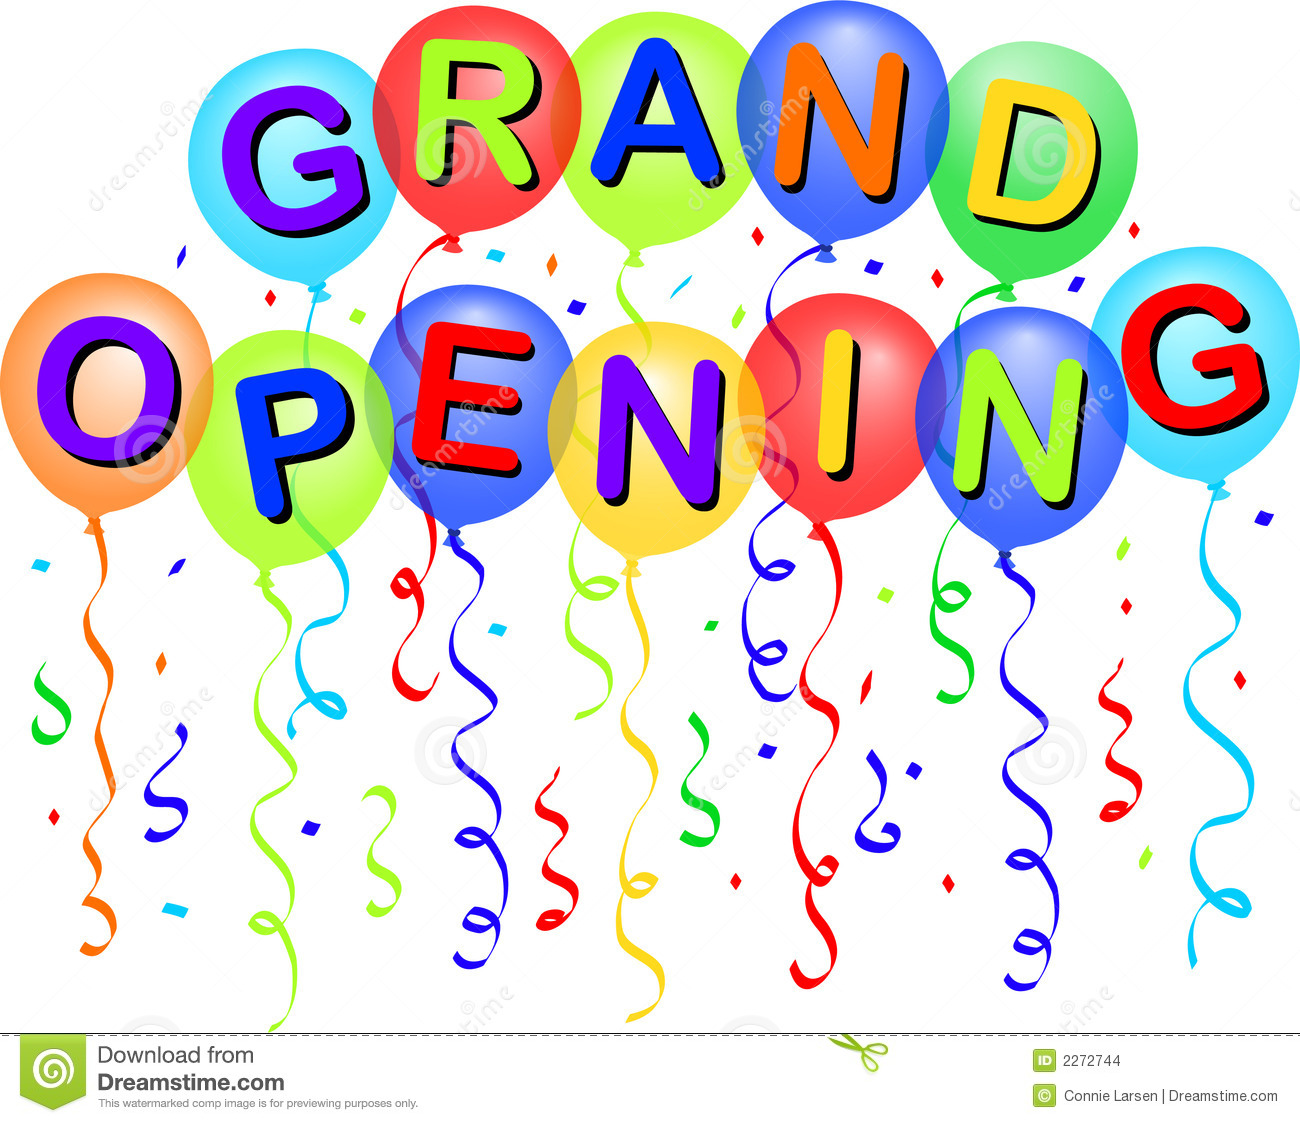 Grand Opening Balloons/eps Stock Images - Image: 2272744